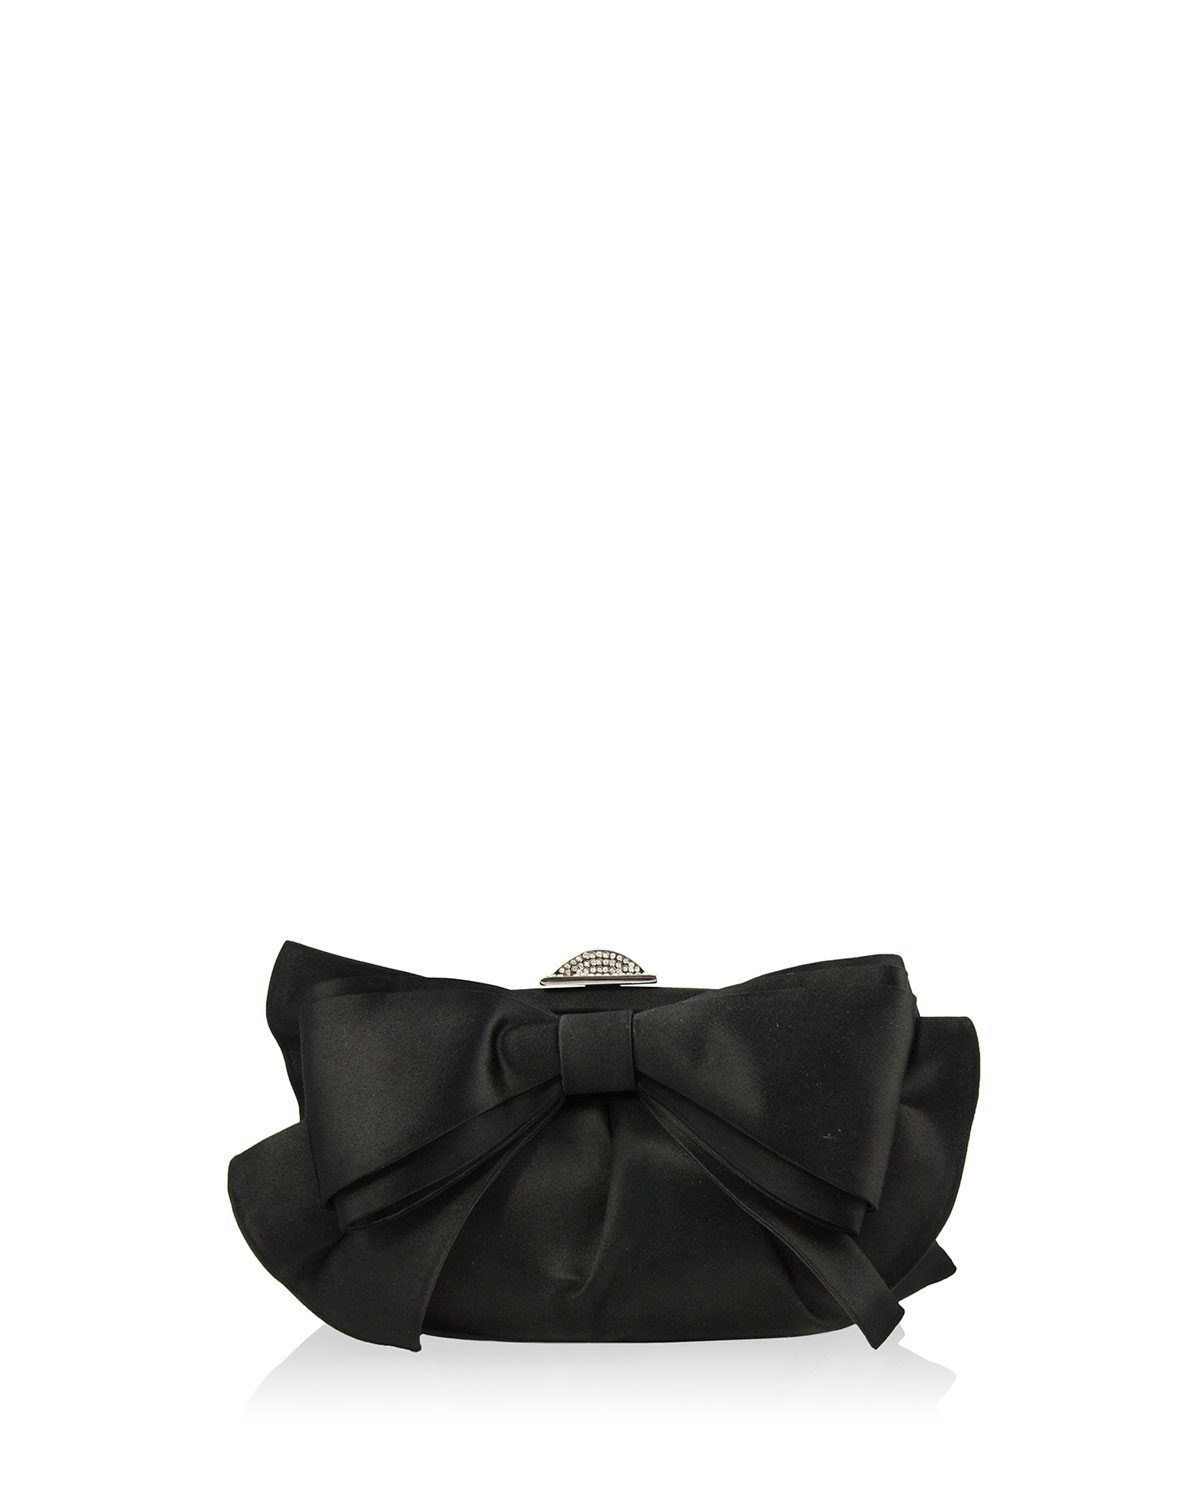 Madison Satin Bow Clutch Bag, Silver/Black